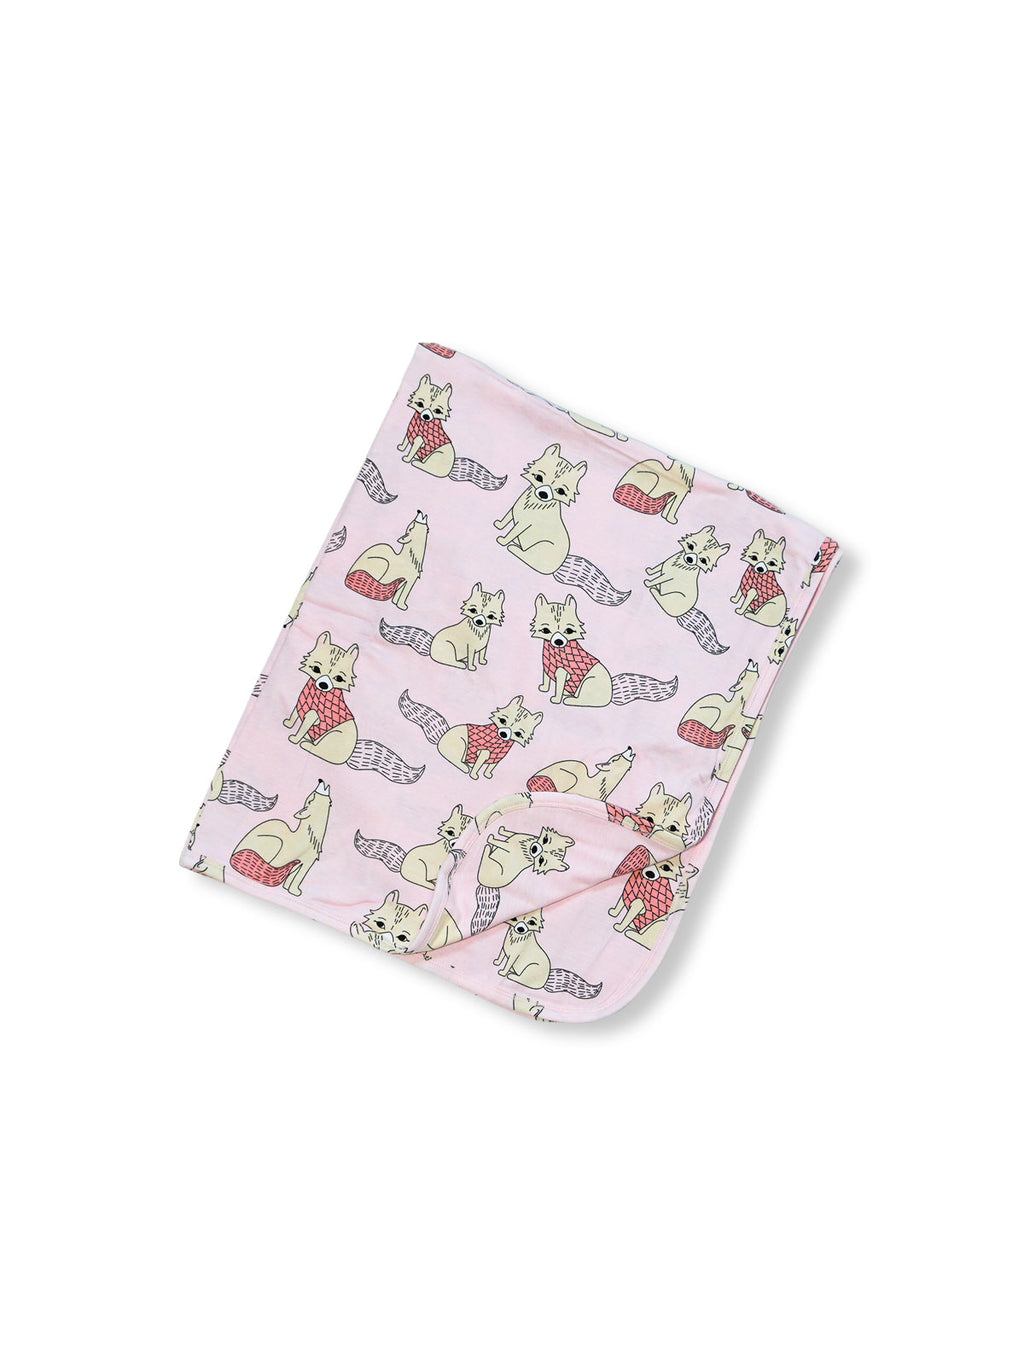 JNY kids organic cotton baby blanket POLAR FOX